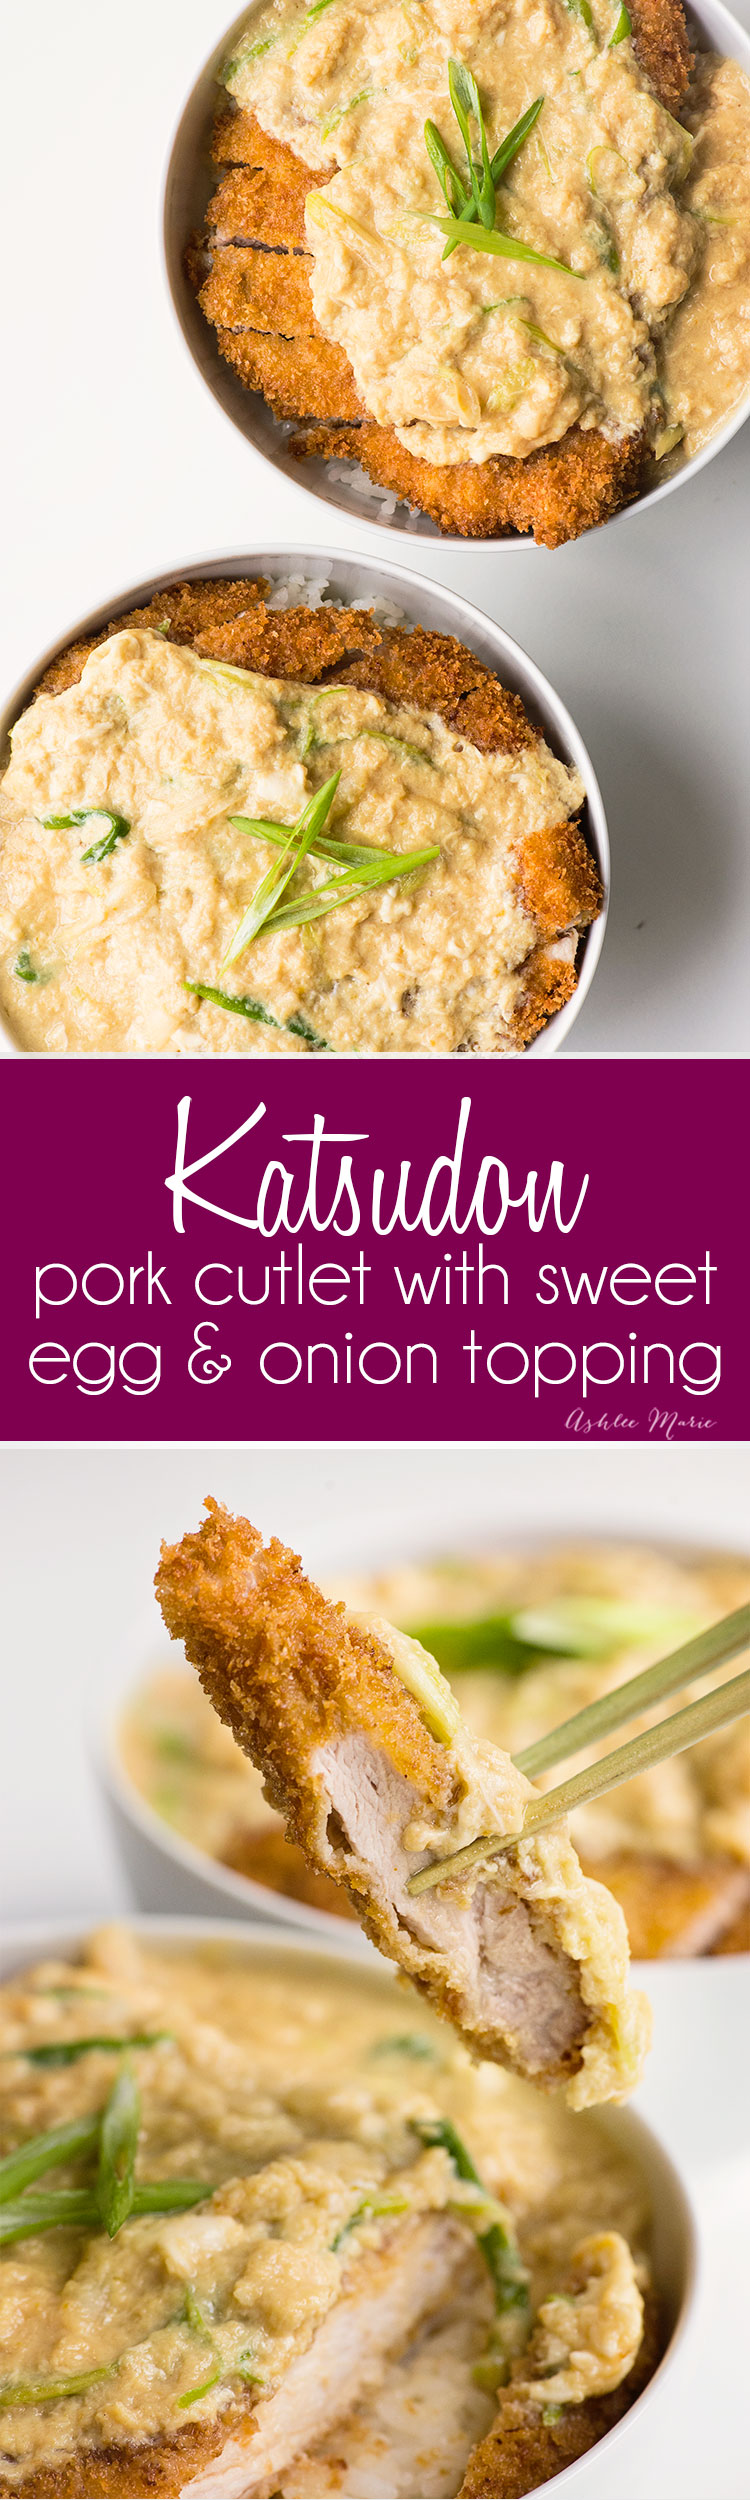 katsodon - a classic japanese dish - a sweet egg and onion topping over a panko crusted pork cutlet served over rice - recipe and video